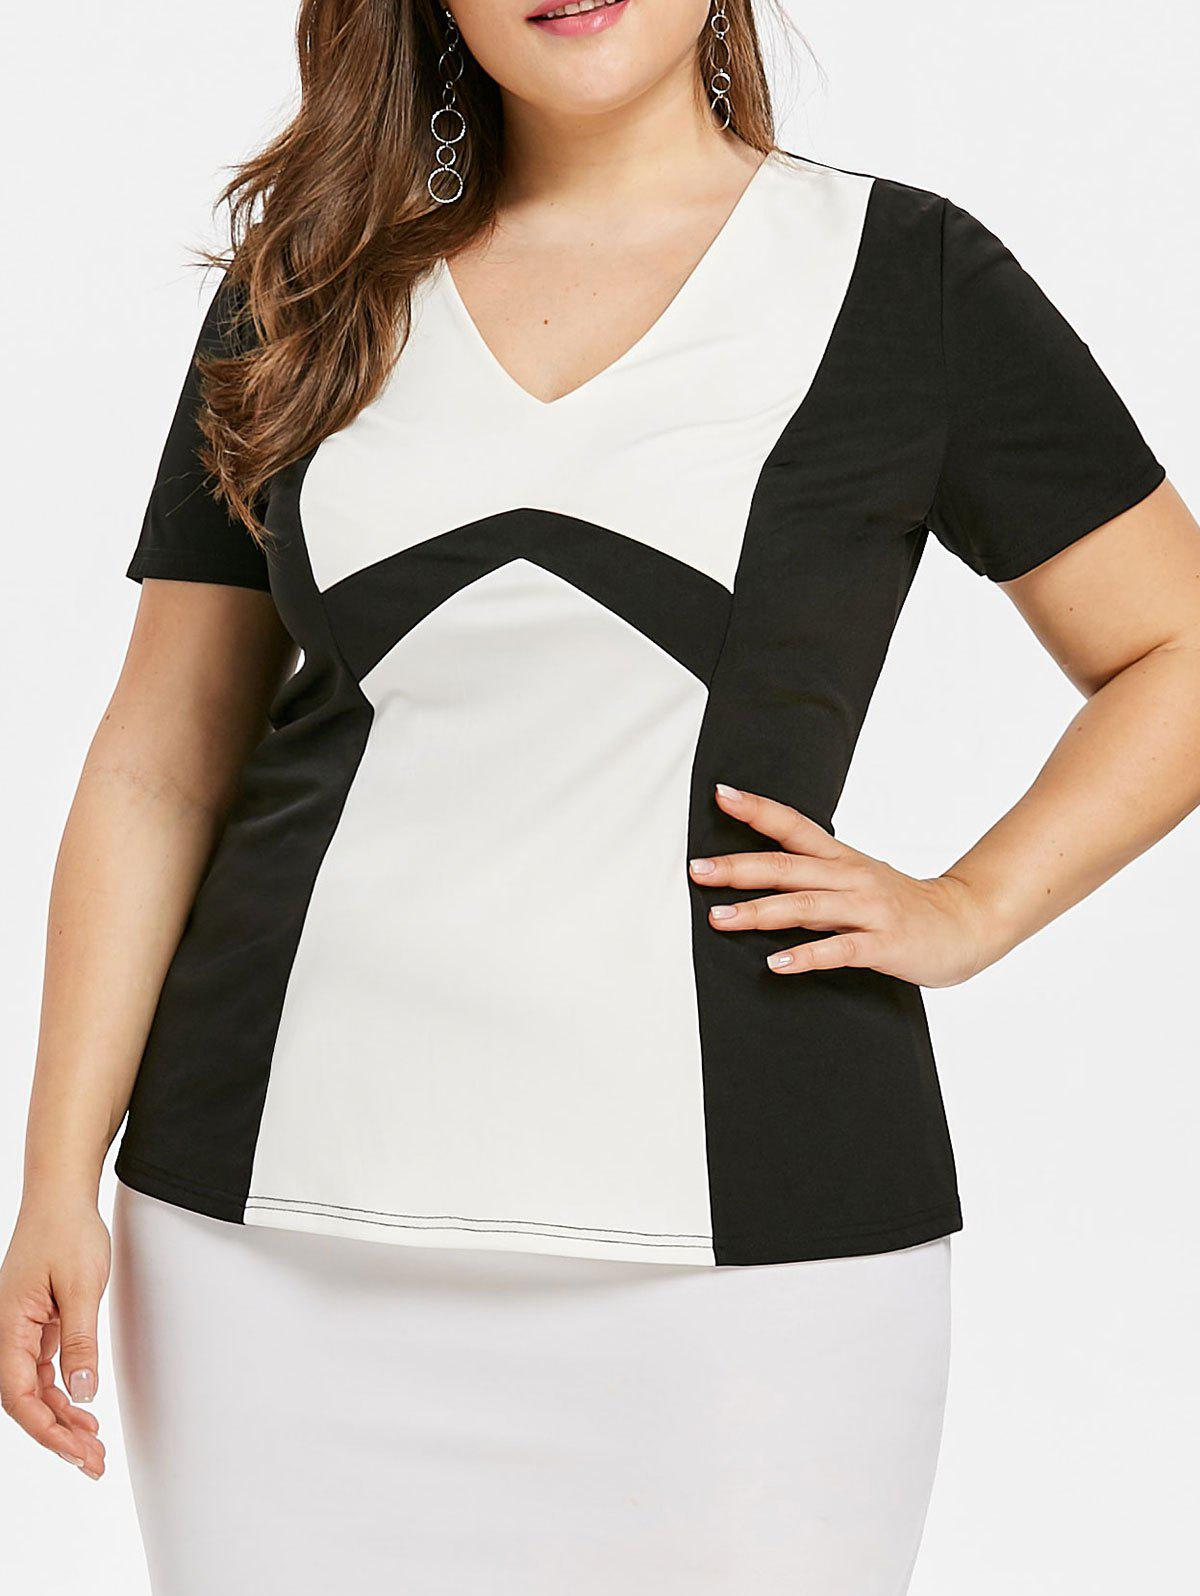 Two Tone Plus Size Empire Waist T-shirt plus size v neck two tone t shirt